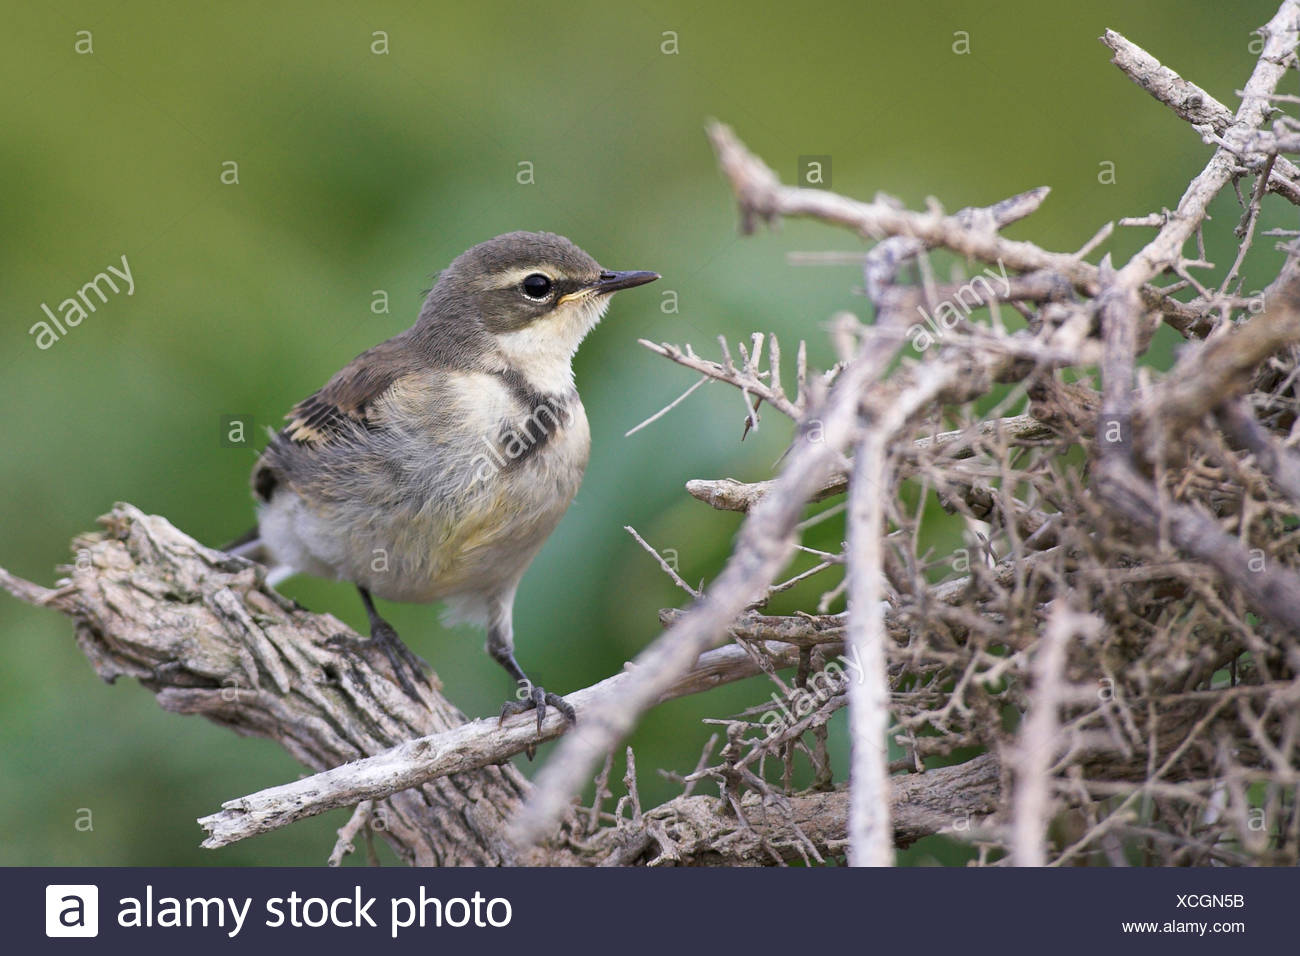 Cape wagtail (Motacilla capensis), portrait, South Africa, Cape Province - Stock Image